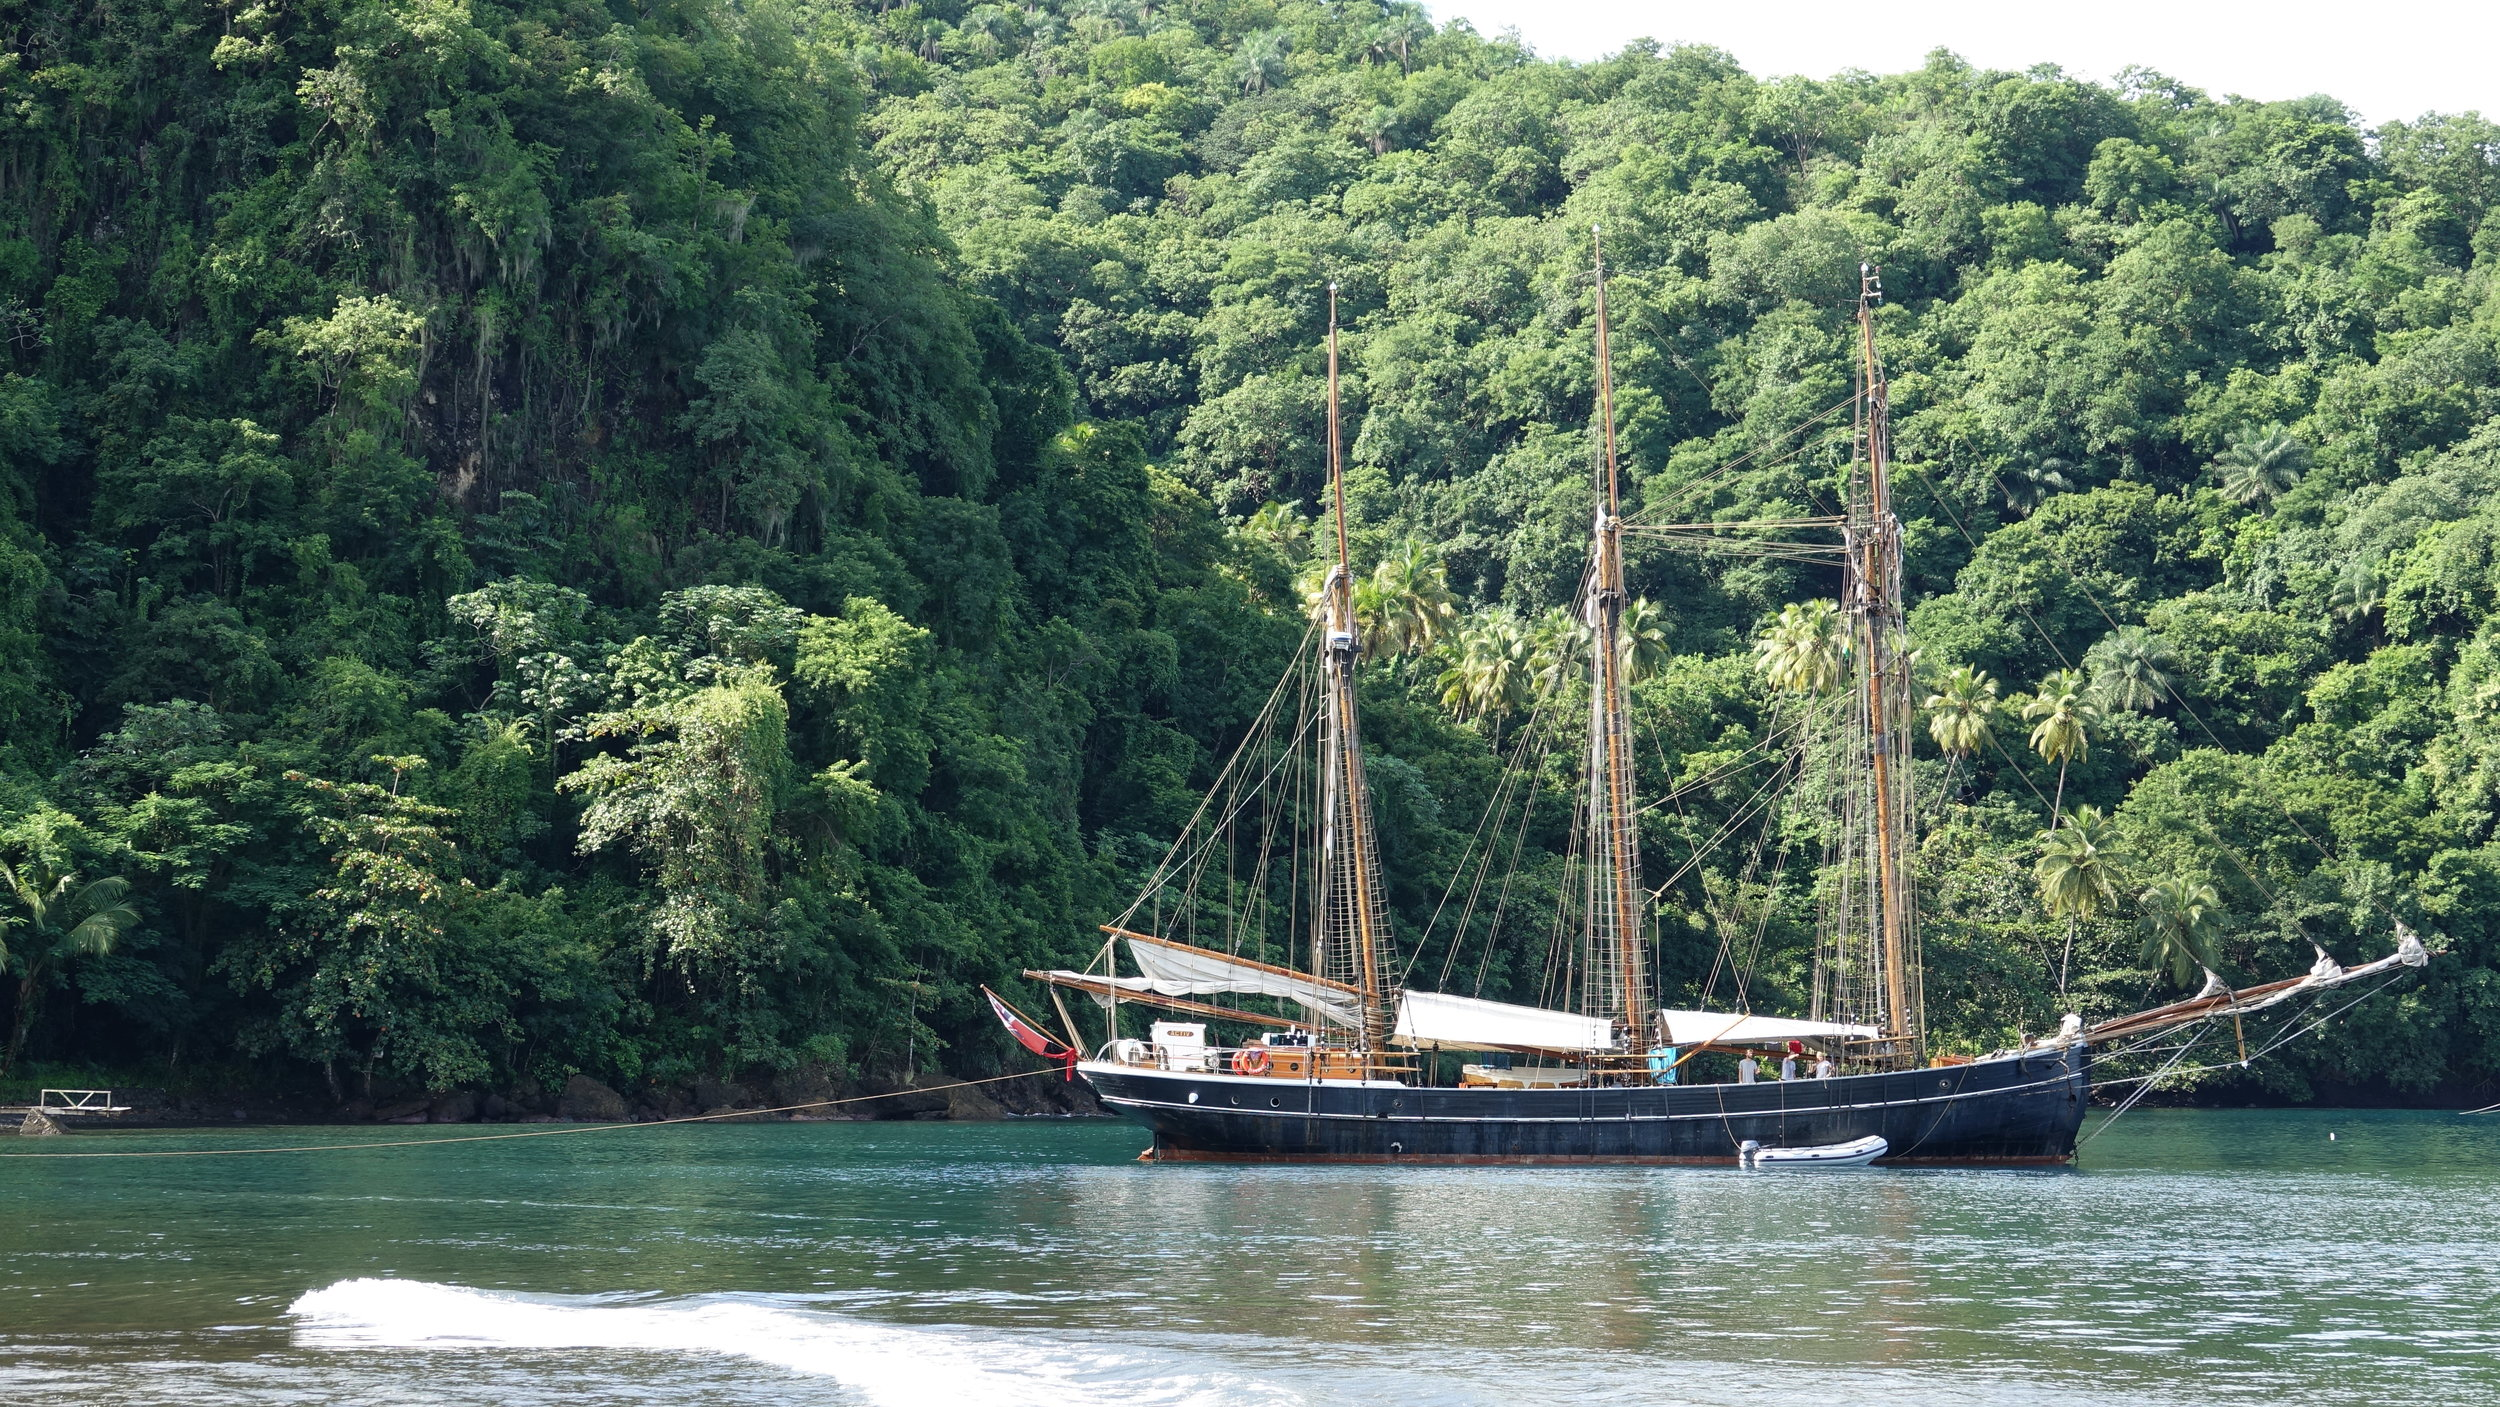 In Cumberland Bay, St. Vincent, with the stern tied to a palm tree.